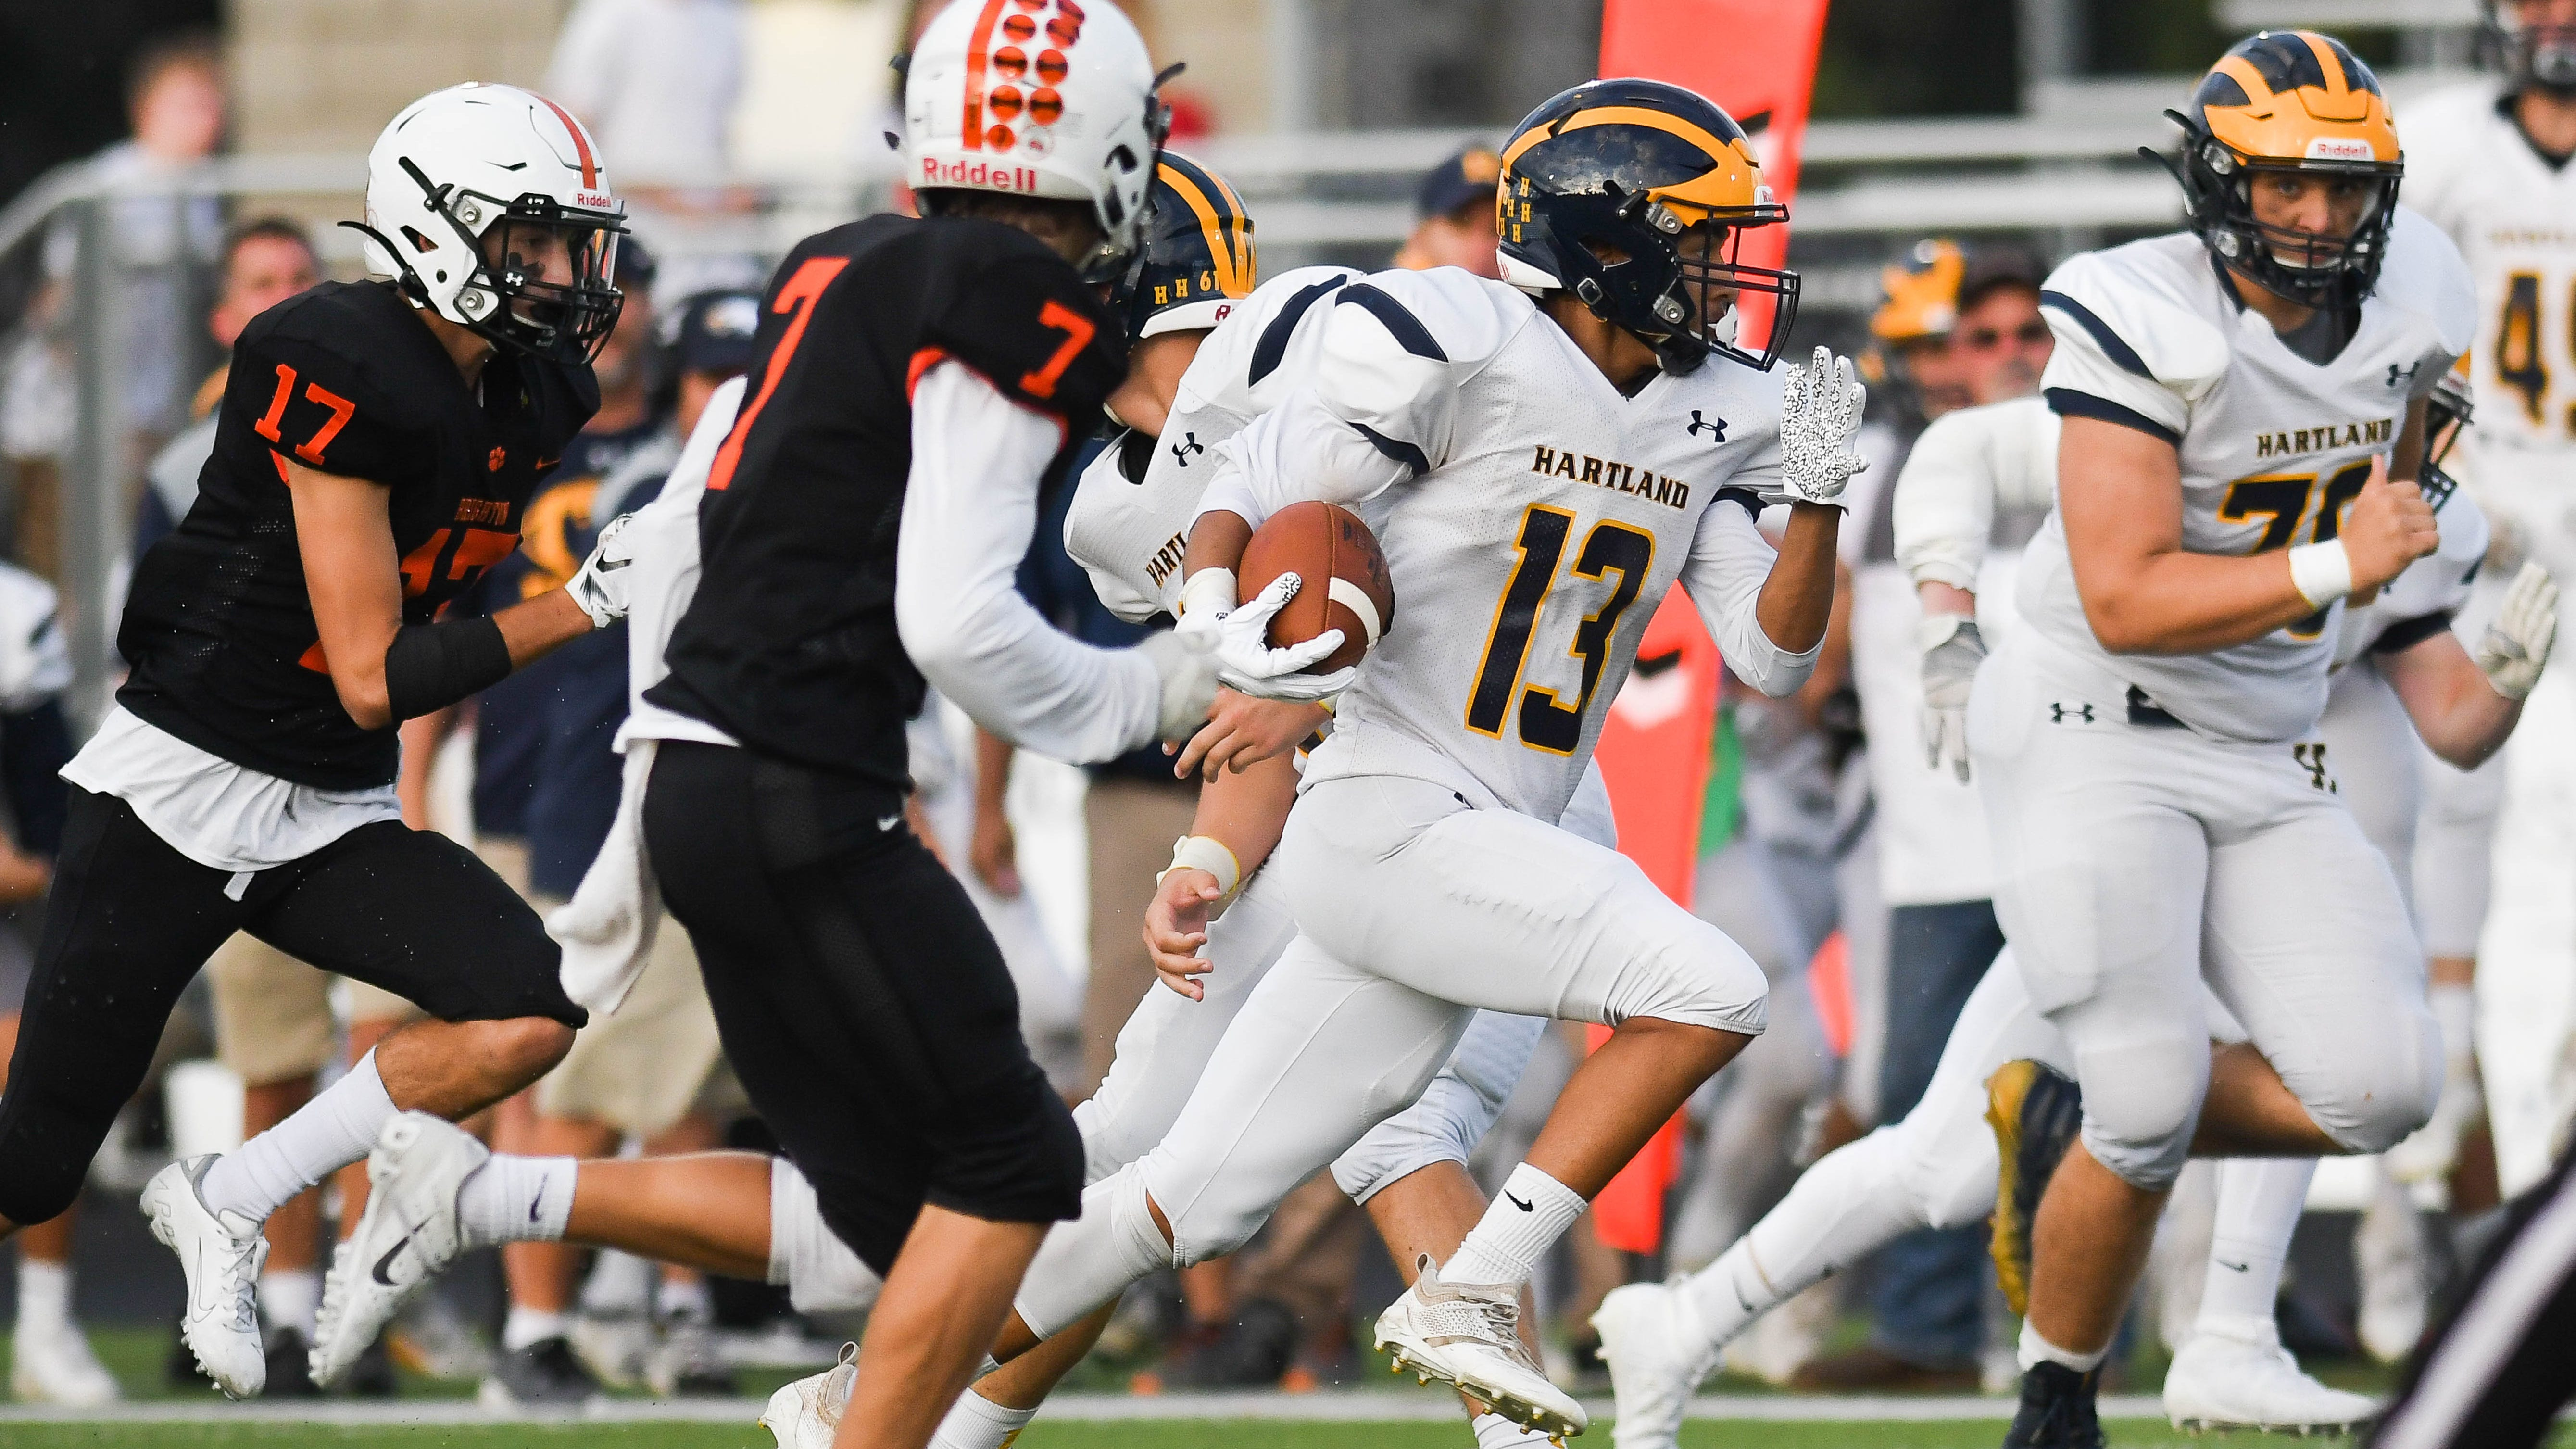 Hartland's Isaac Elmore (13) caught a 69-yard touchdown pass to open the scoring in a 35-7 victory over Northville.